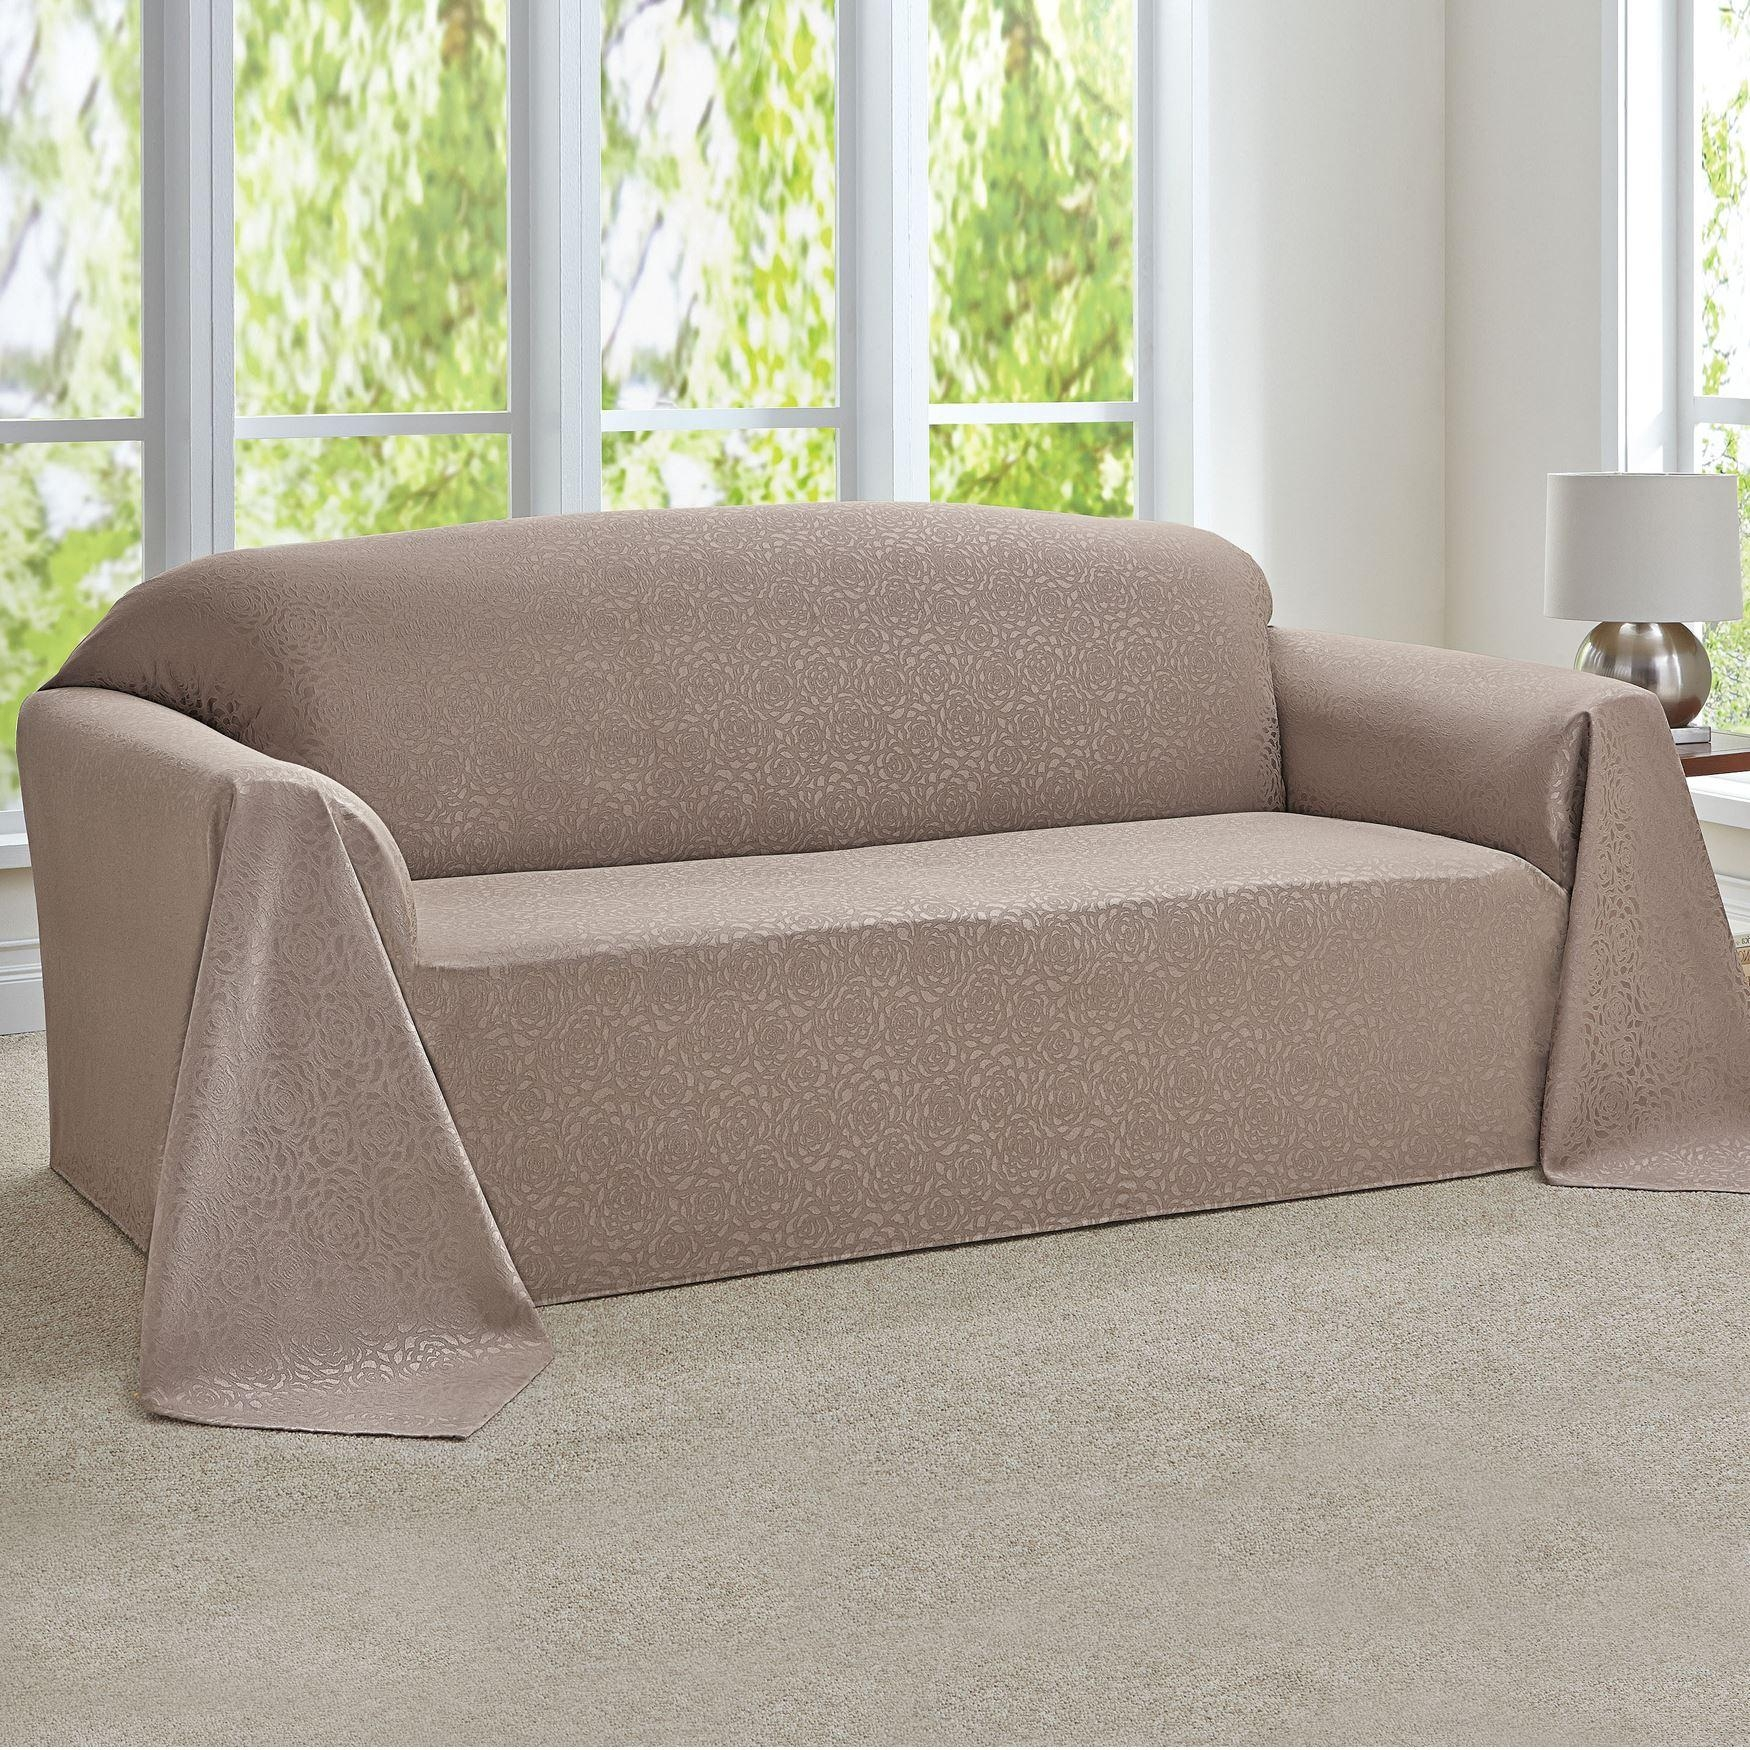 Sofas : Amazing Settee Covers Slip Covers For Sofa Sectional Sofa Throughout Sofa Settee Covers (Image 13 of 22)